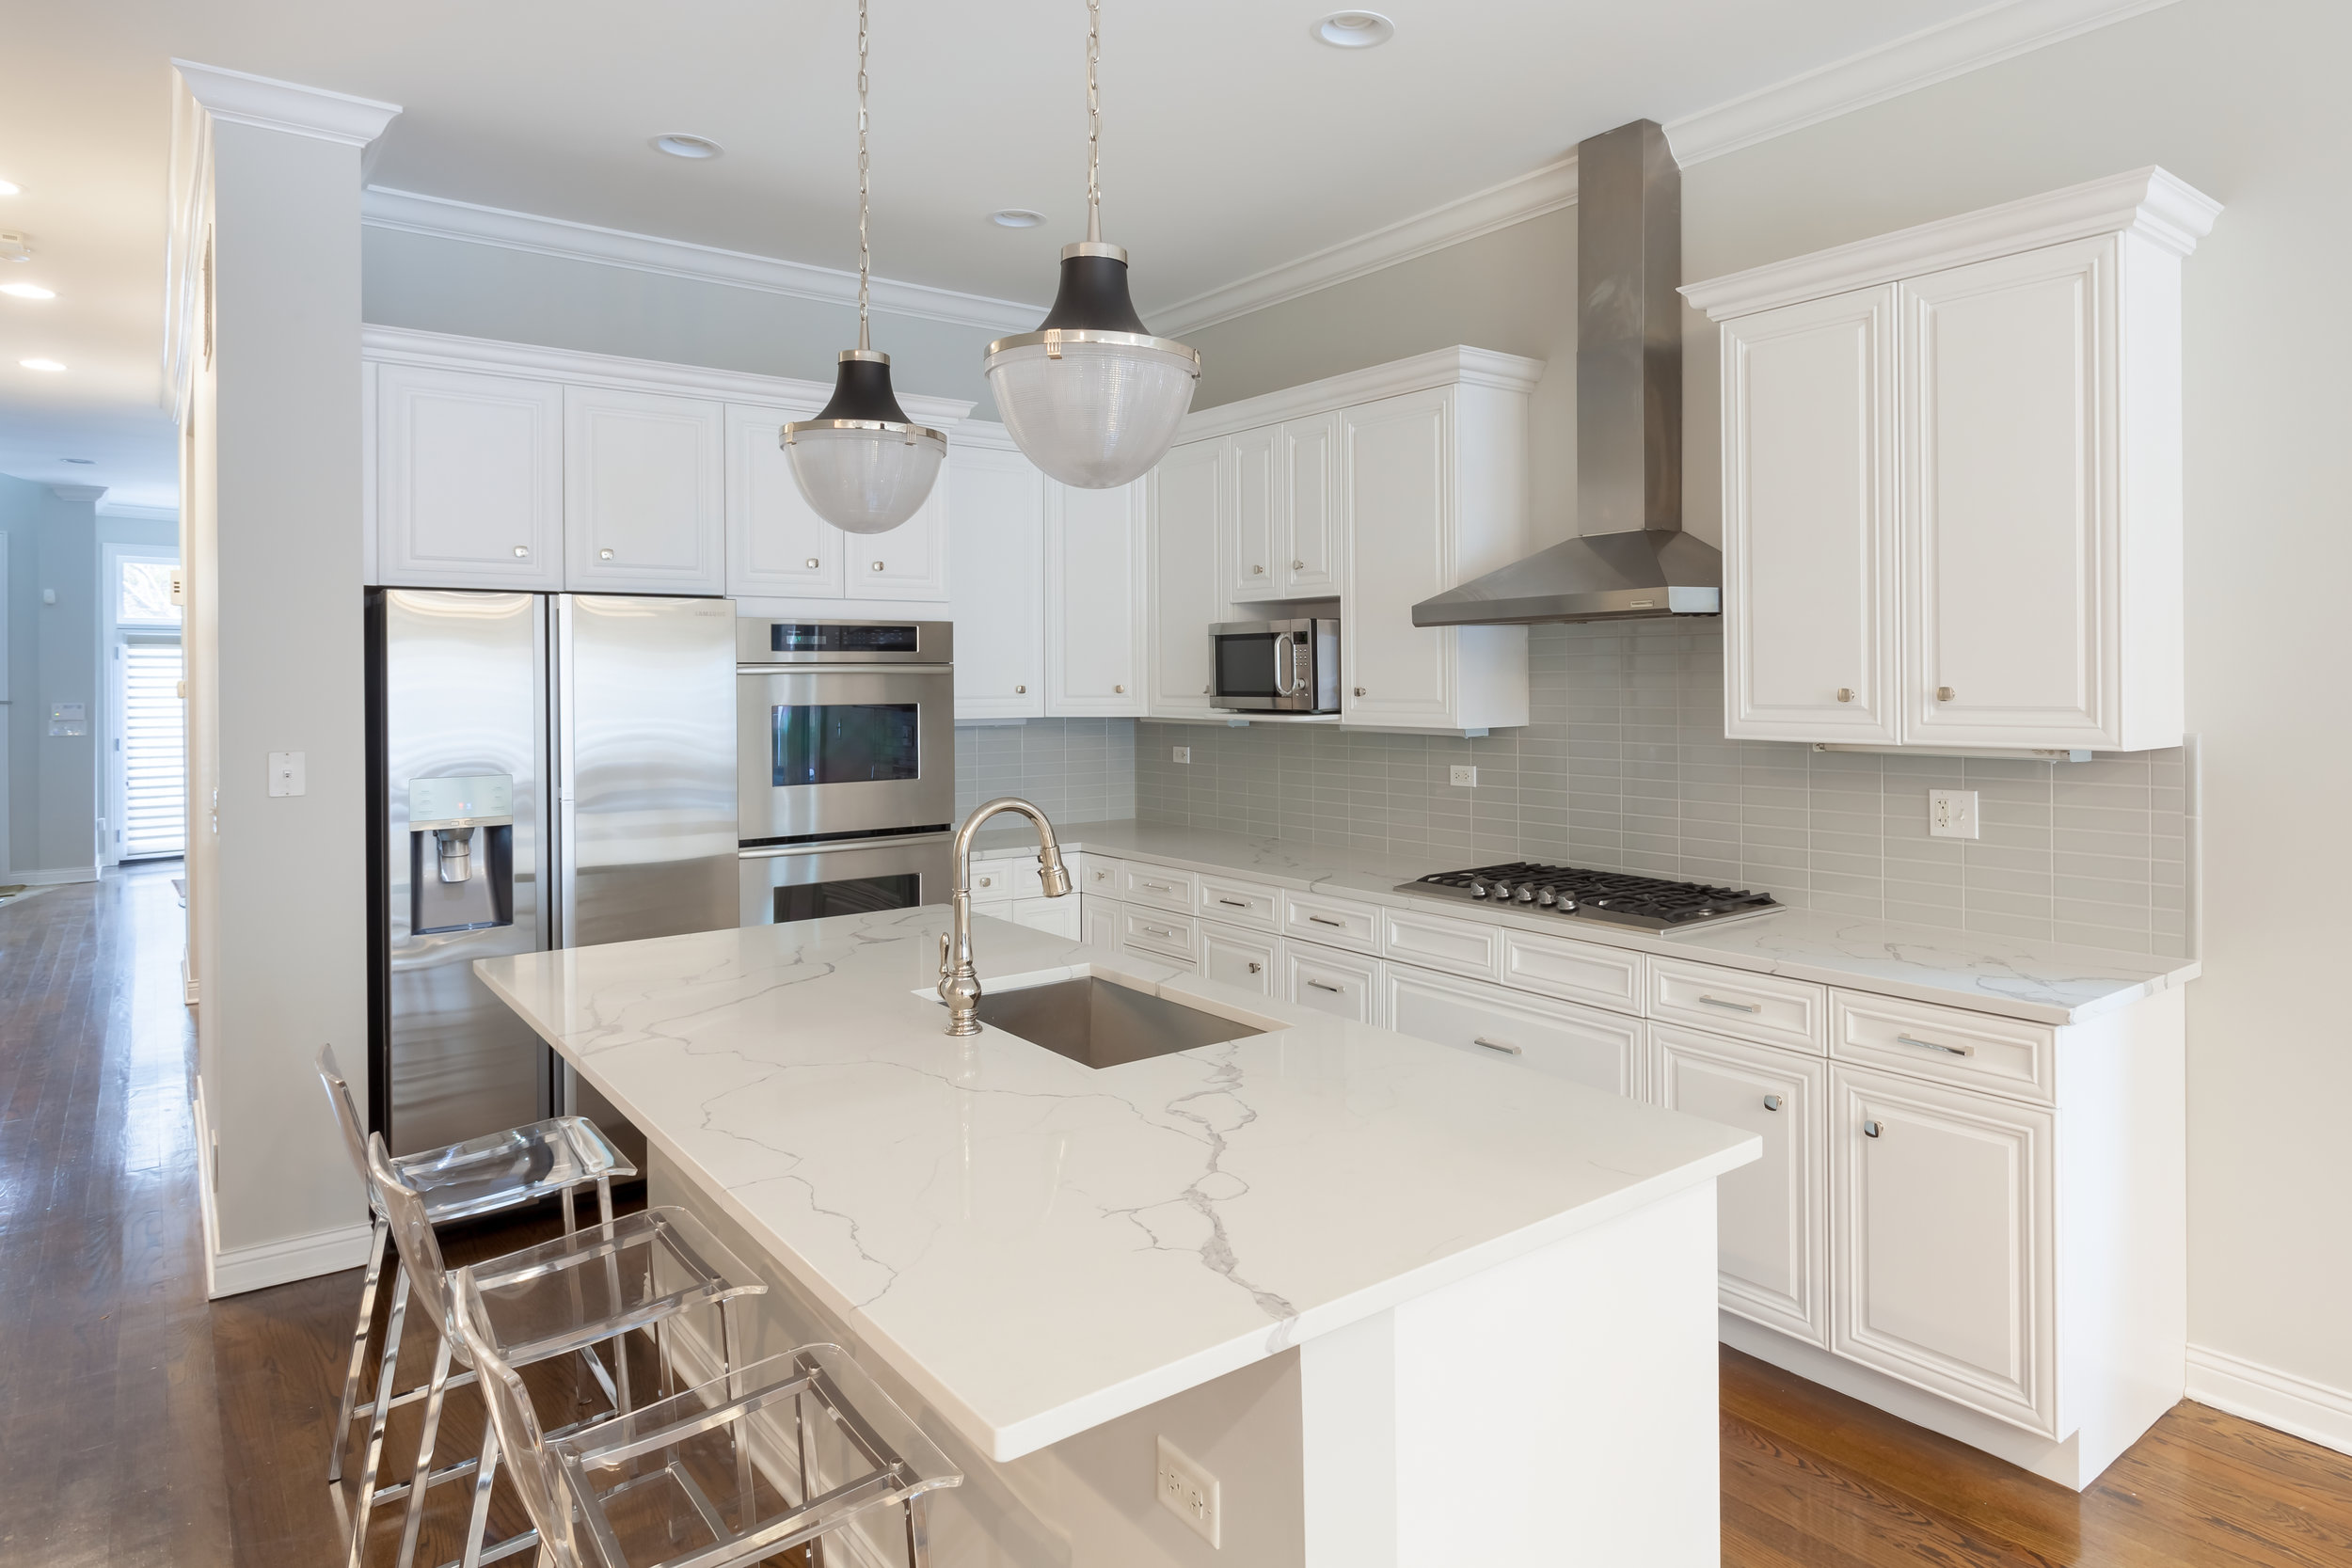 Lincoln Park Single Family - Construction Cost: $25,000Construction Time: 2 WeeksList Price: $1,299,000Sale Price: $1,235,000